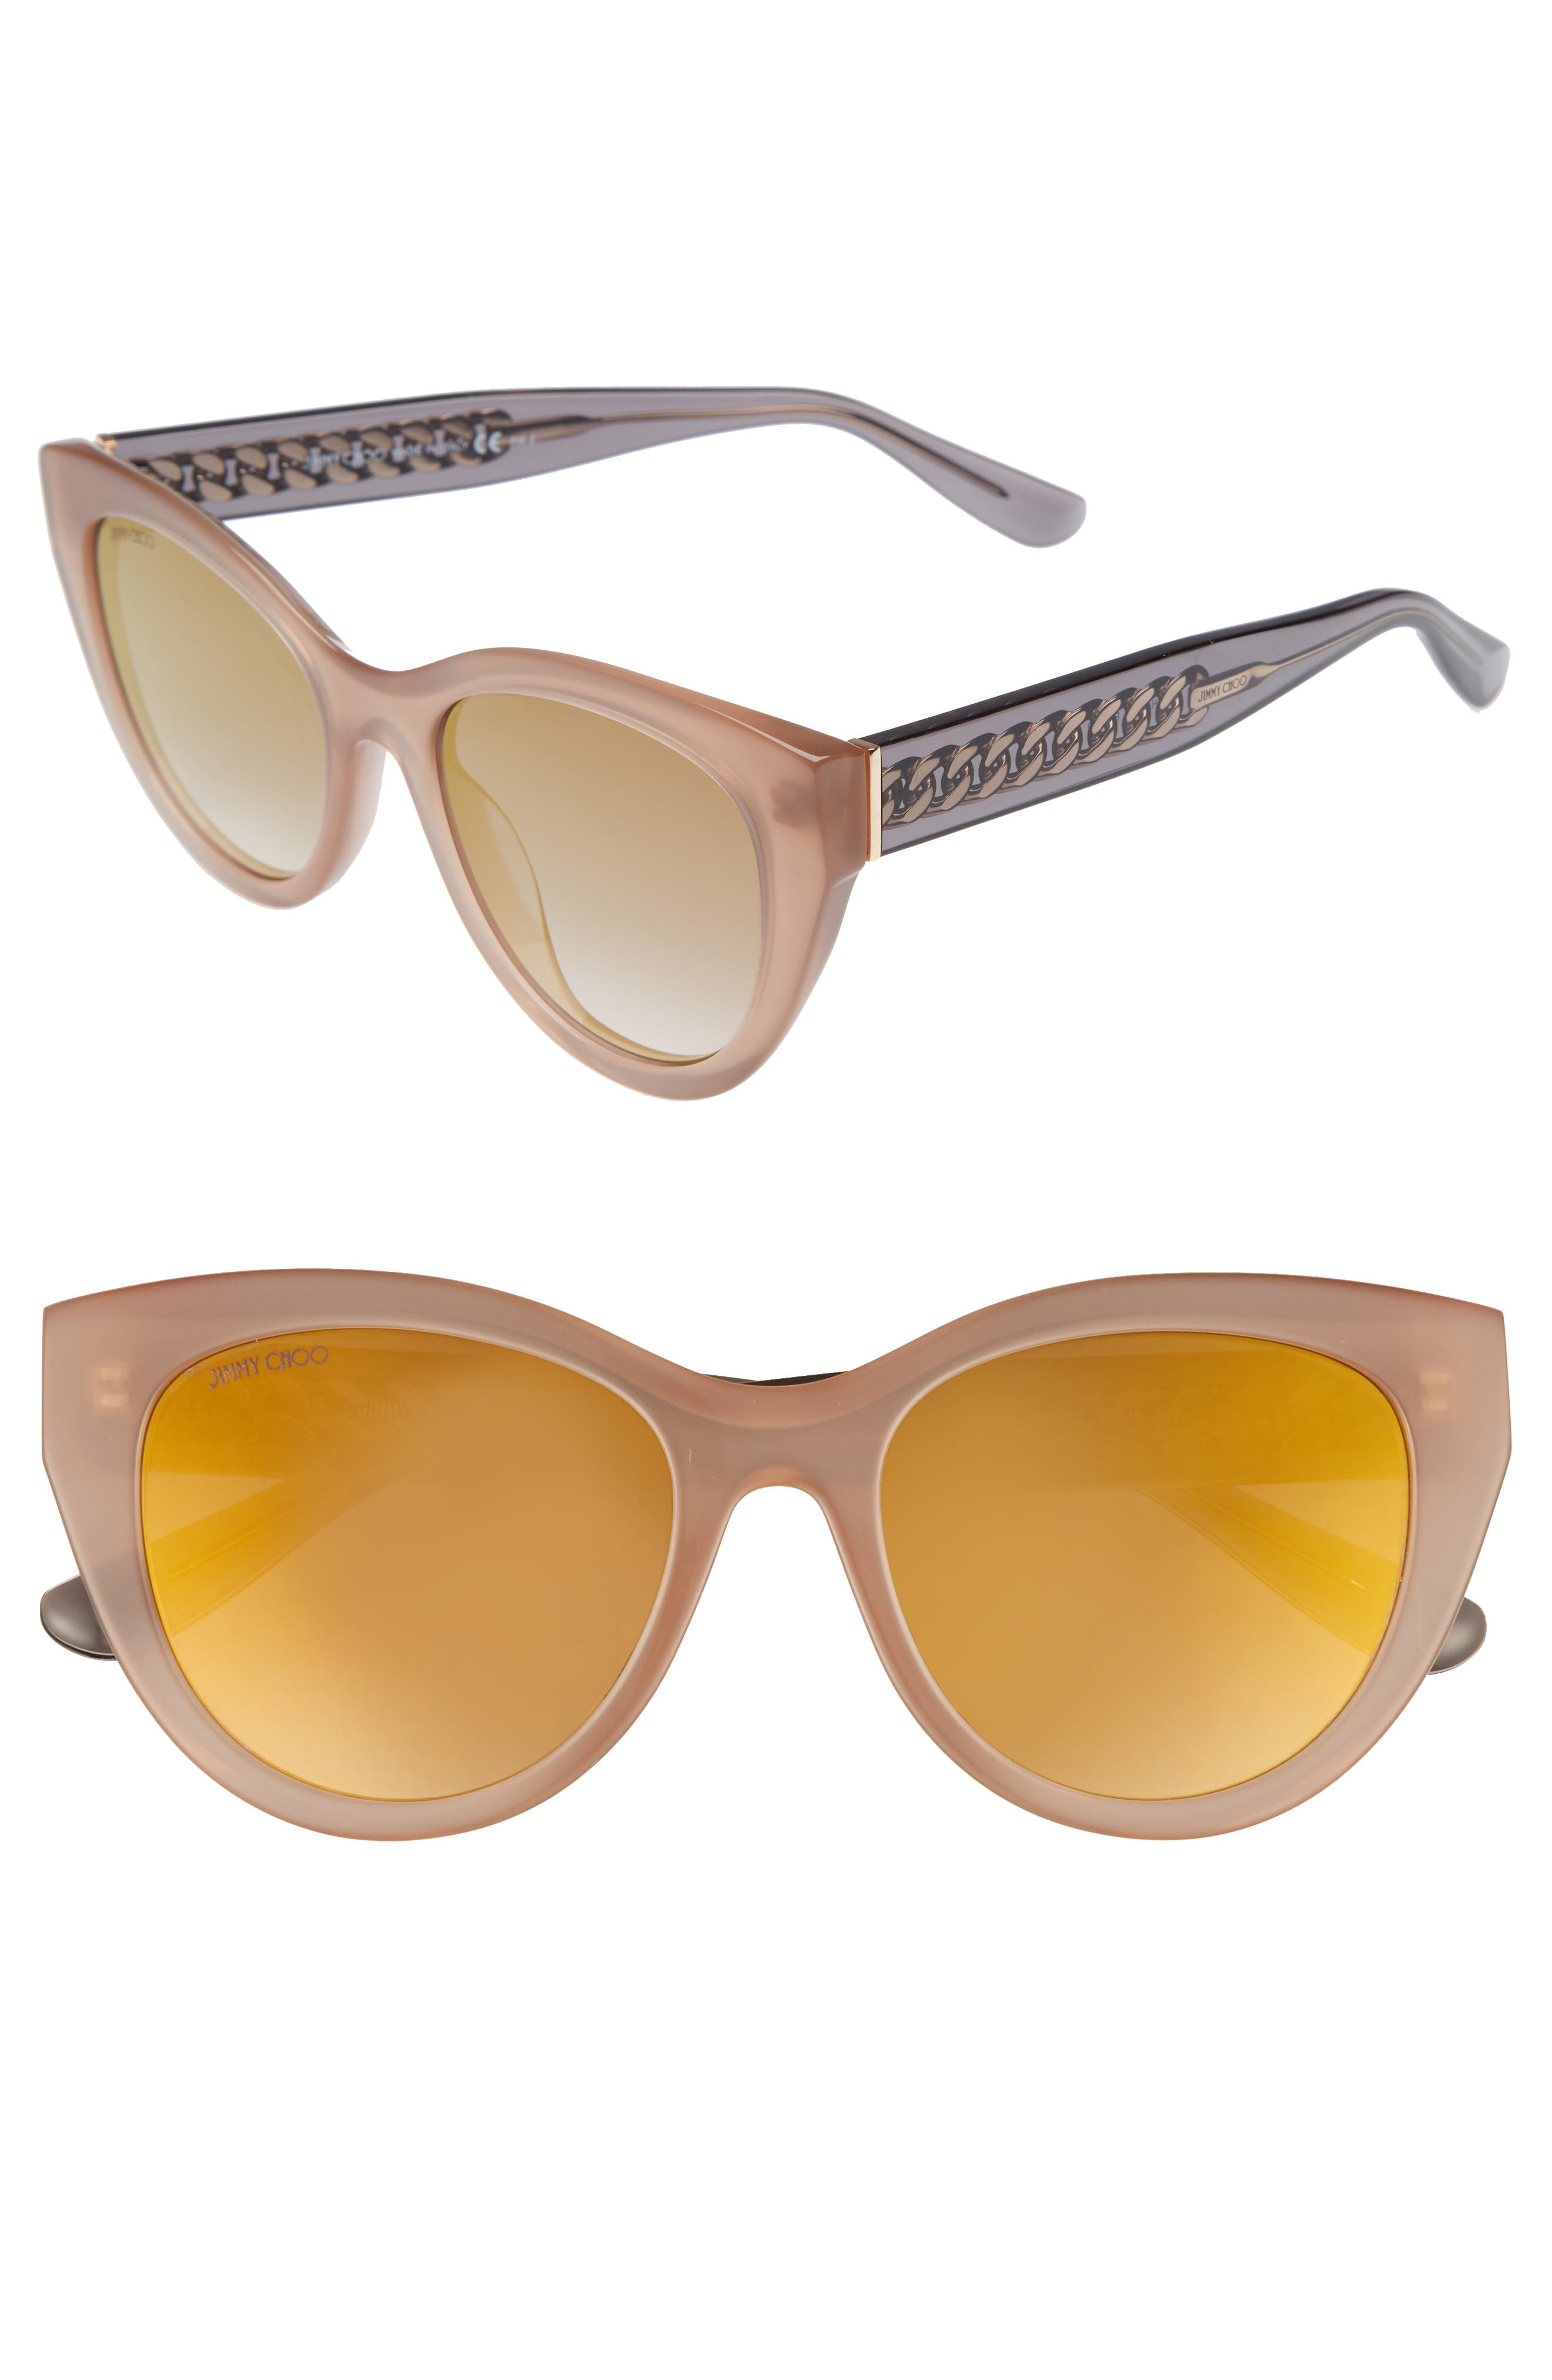 Jimmy Choo Chana 52mm Gradient Sunglasses